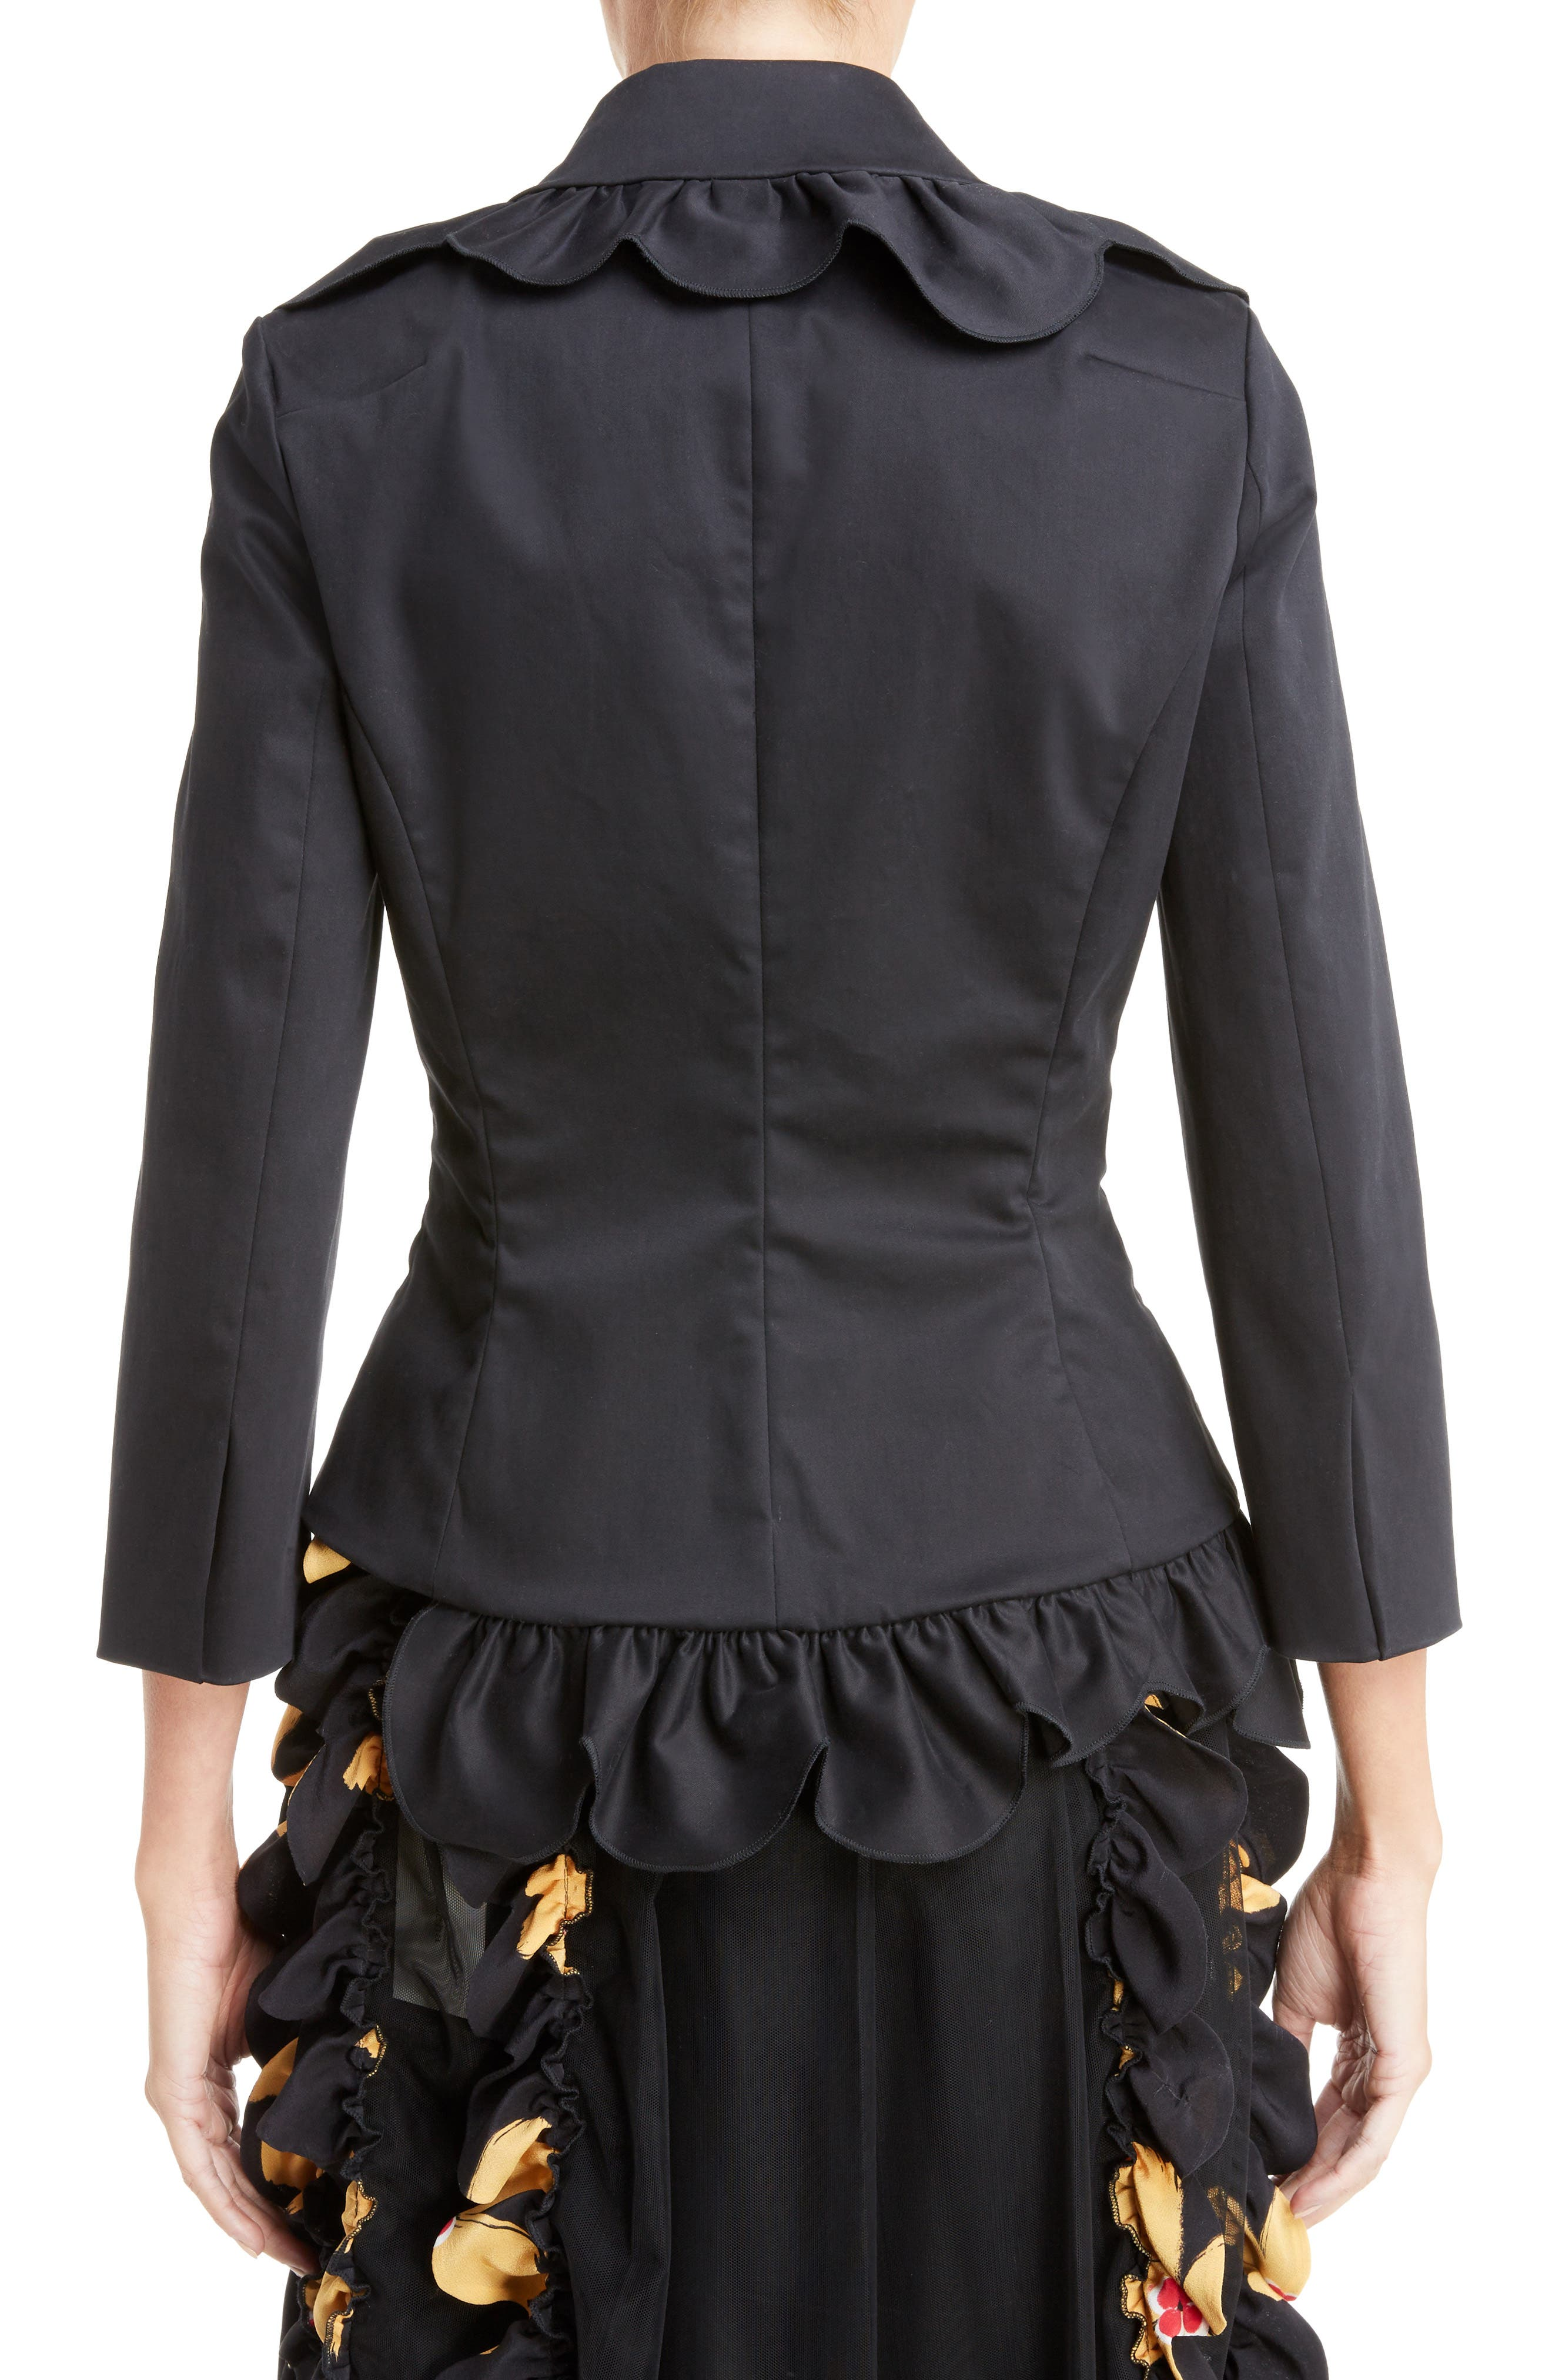 Scallop Frill Fitted Jacket,                             Alternate thumbnail 3, color,